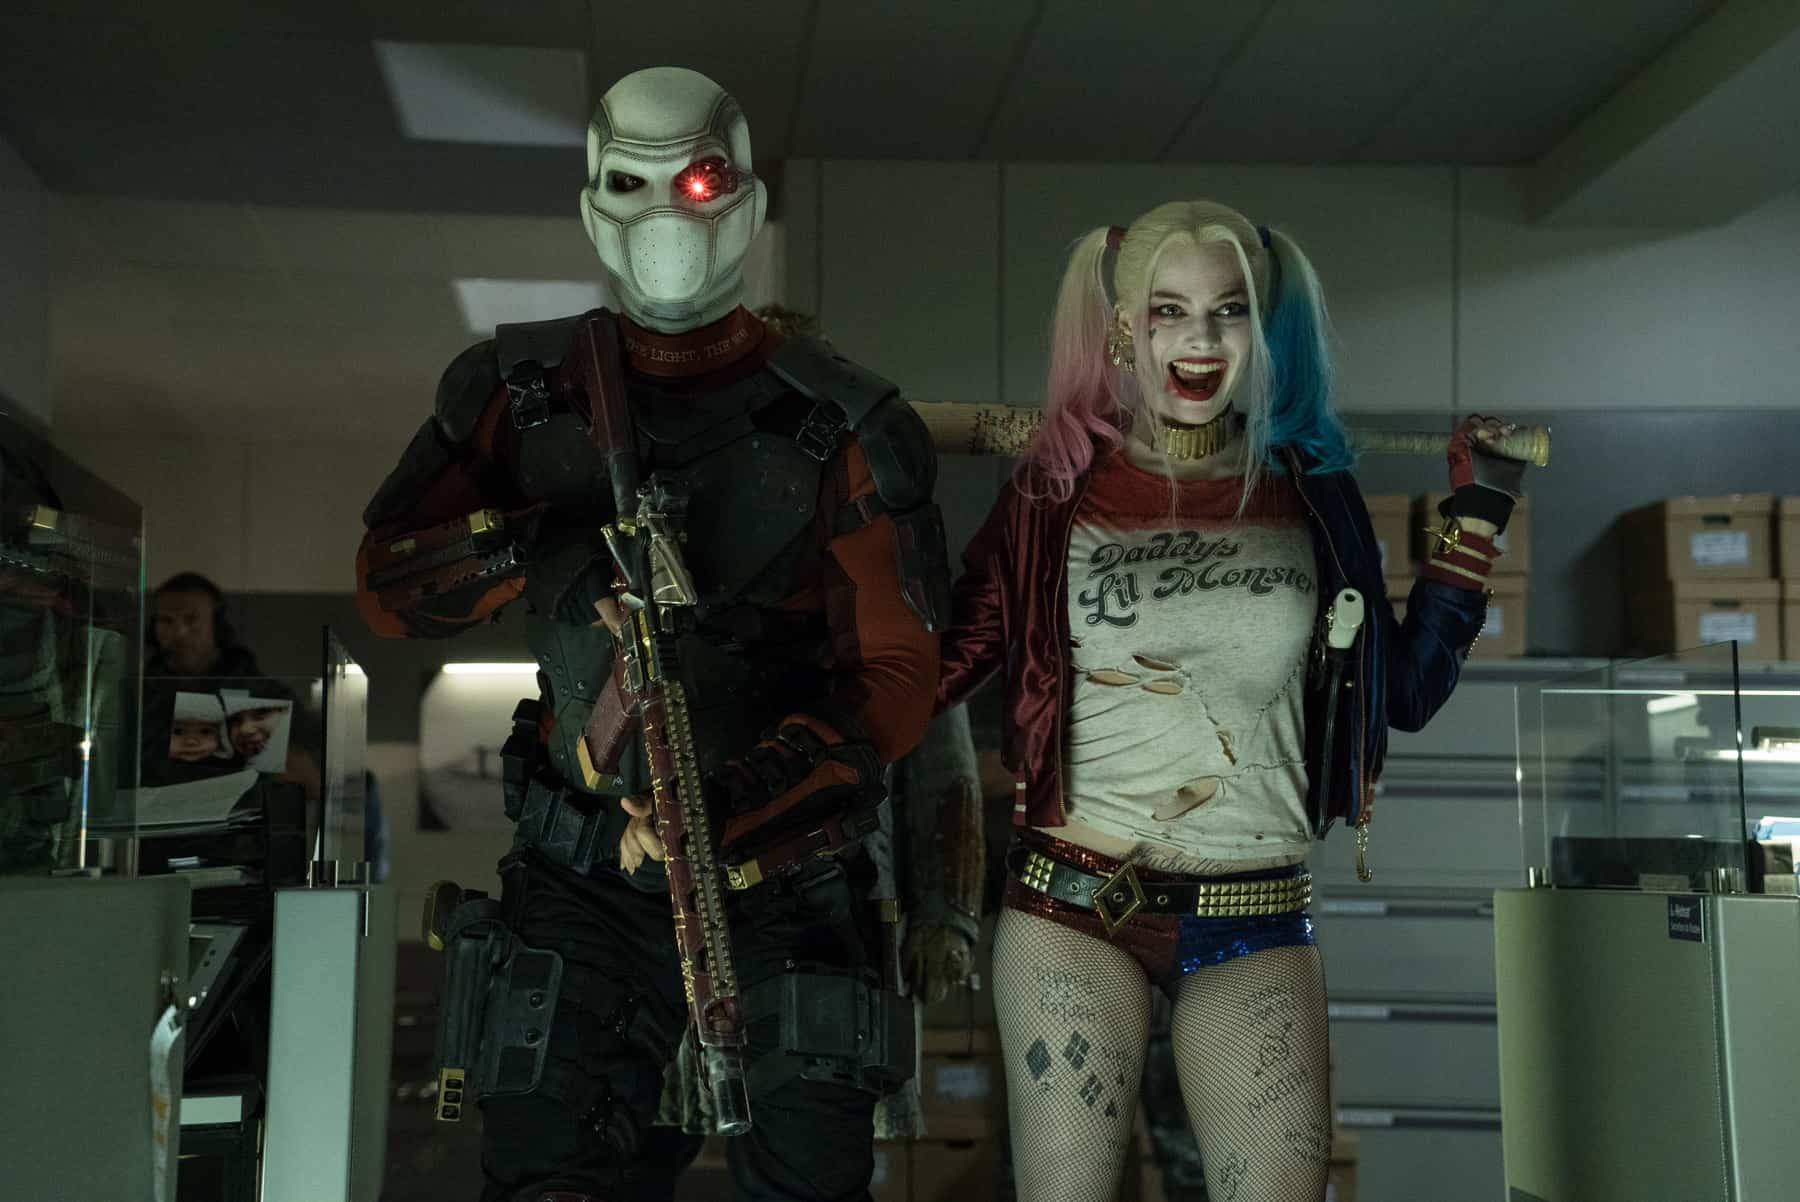 'Suicide Squad' is heavily based off John Ostrander's work